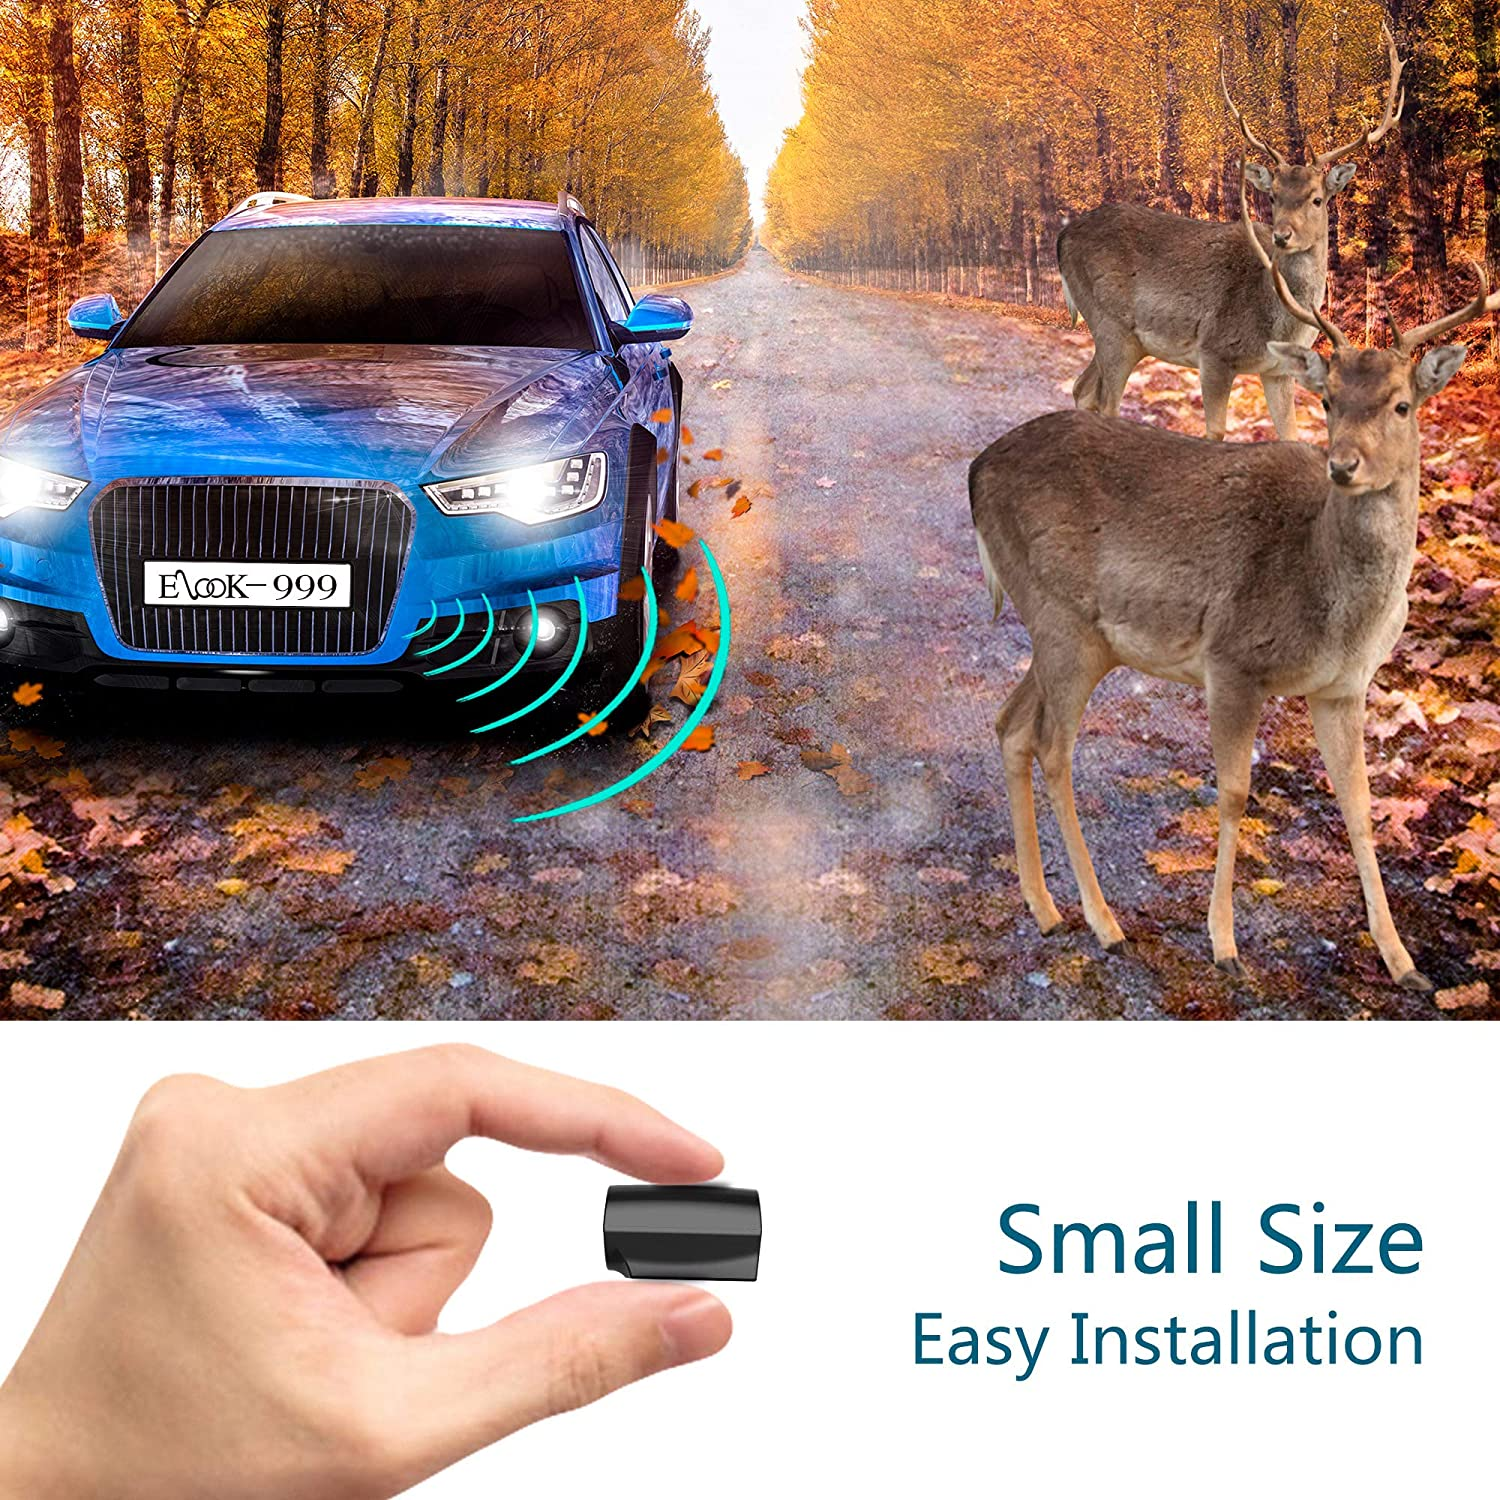 Mini Size Save Deer Whistle with Upgraded Acrylic Double-Sided Tape 2 Pack Elook Deer Warning Whistles Device for Car